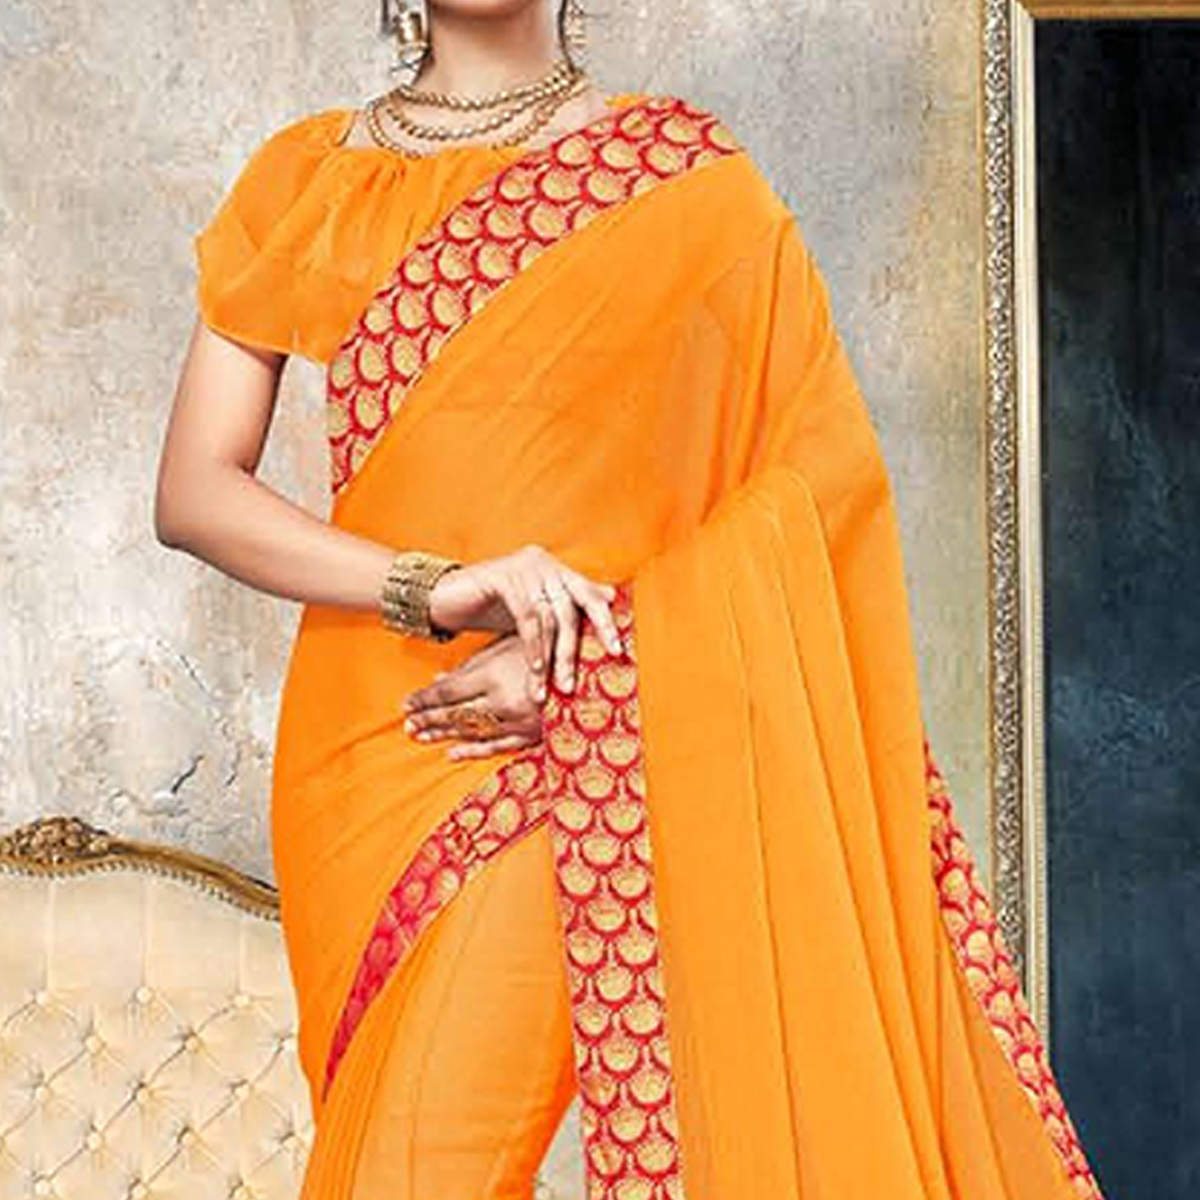 Exceptional Orange Colored Partywear Printed Heavy Georgette Saree With Lace Border